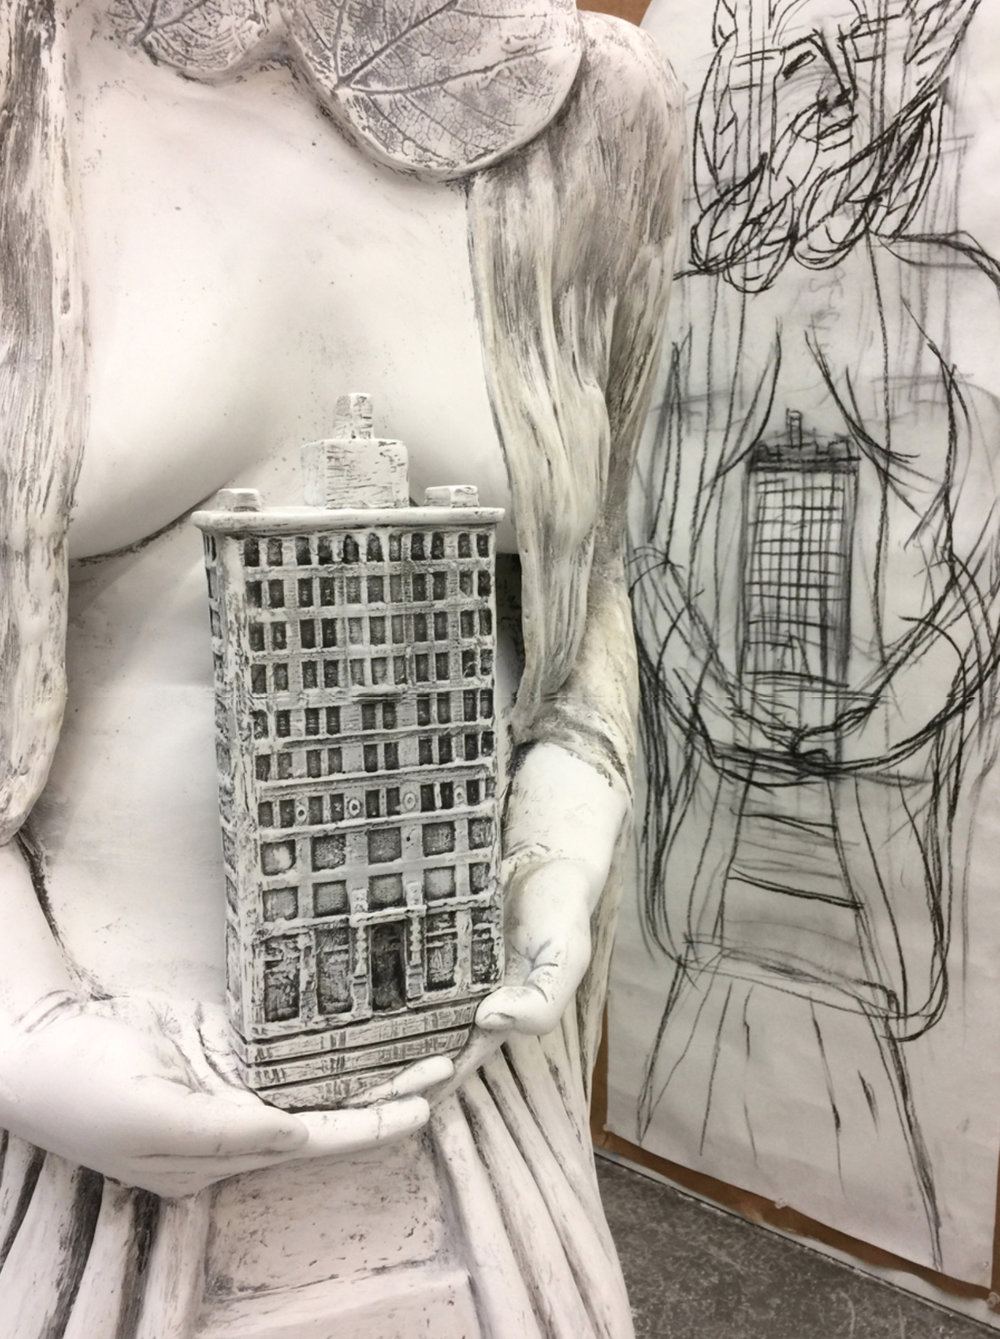 Sculpture detail next to scale sketch. Photo courtesy of the artist.